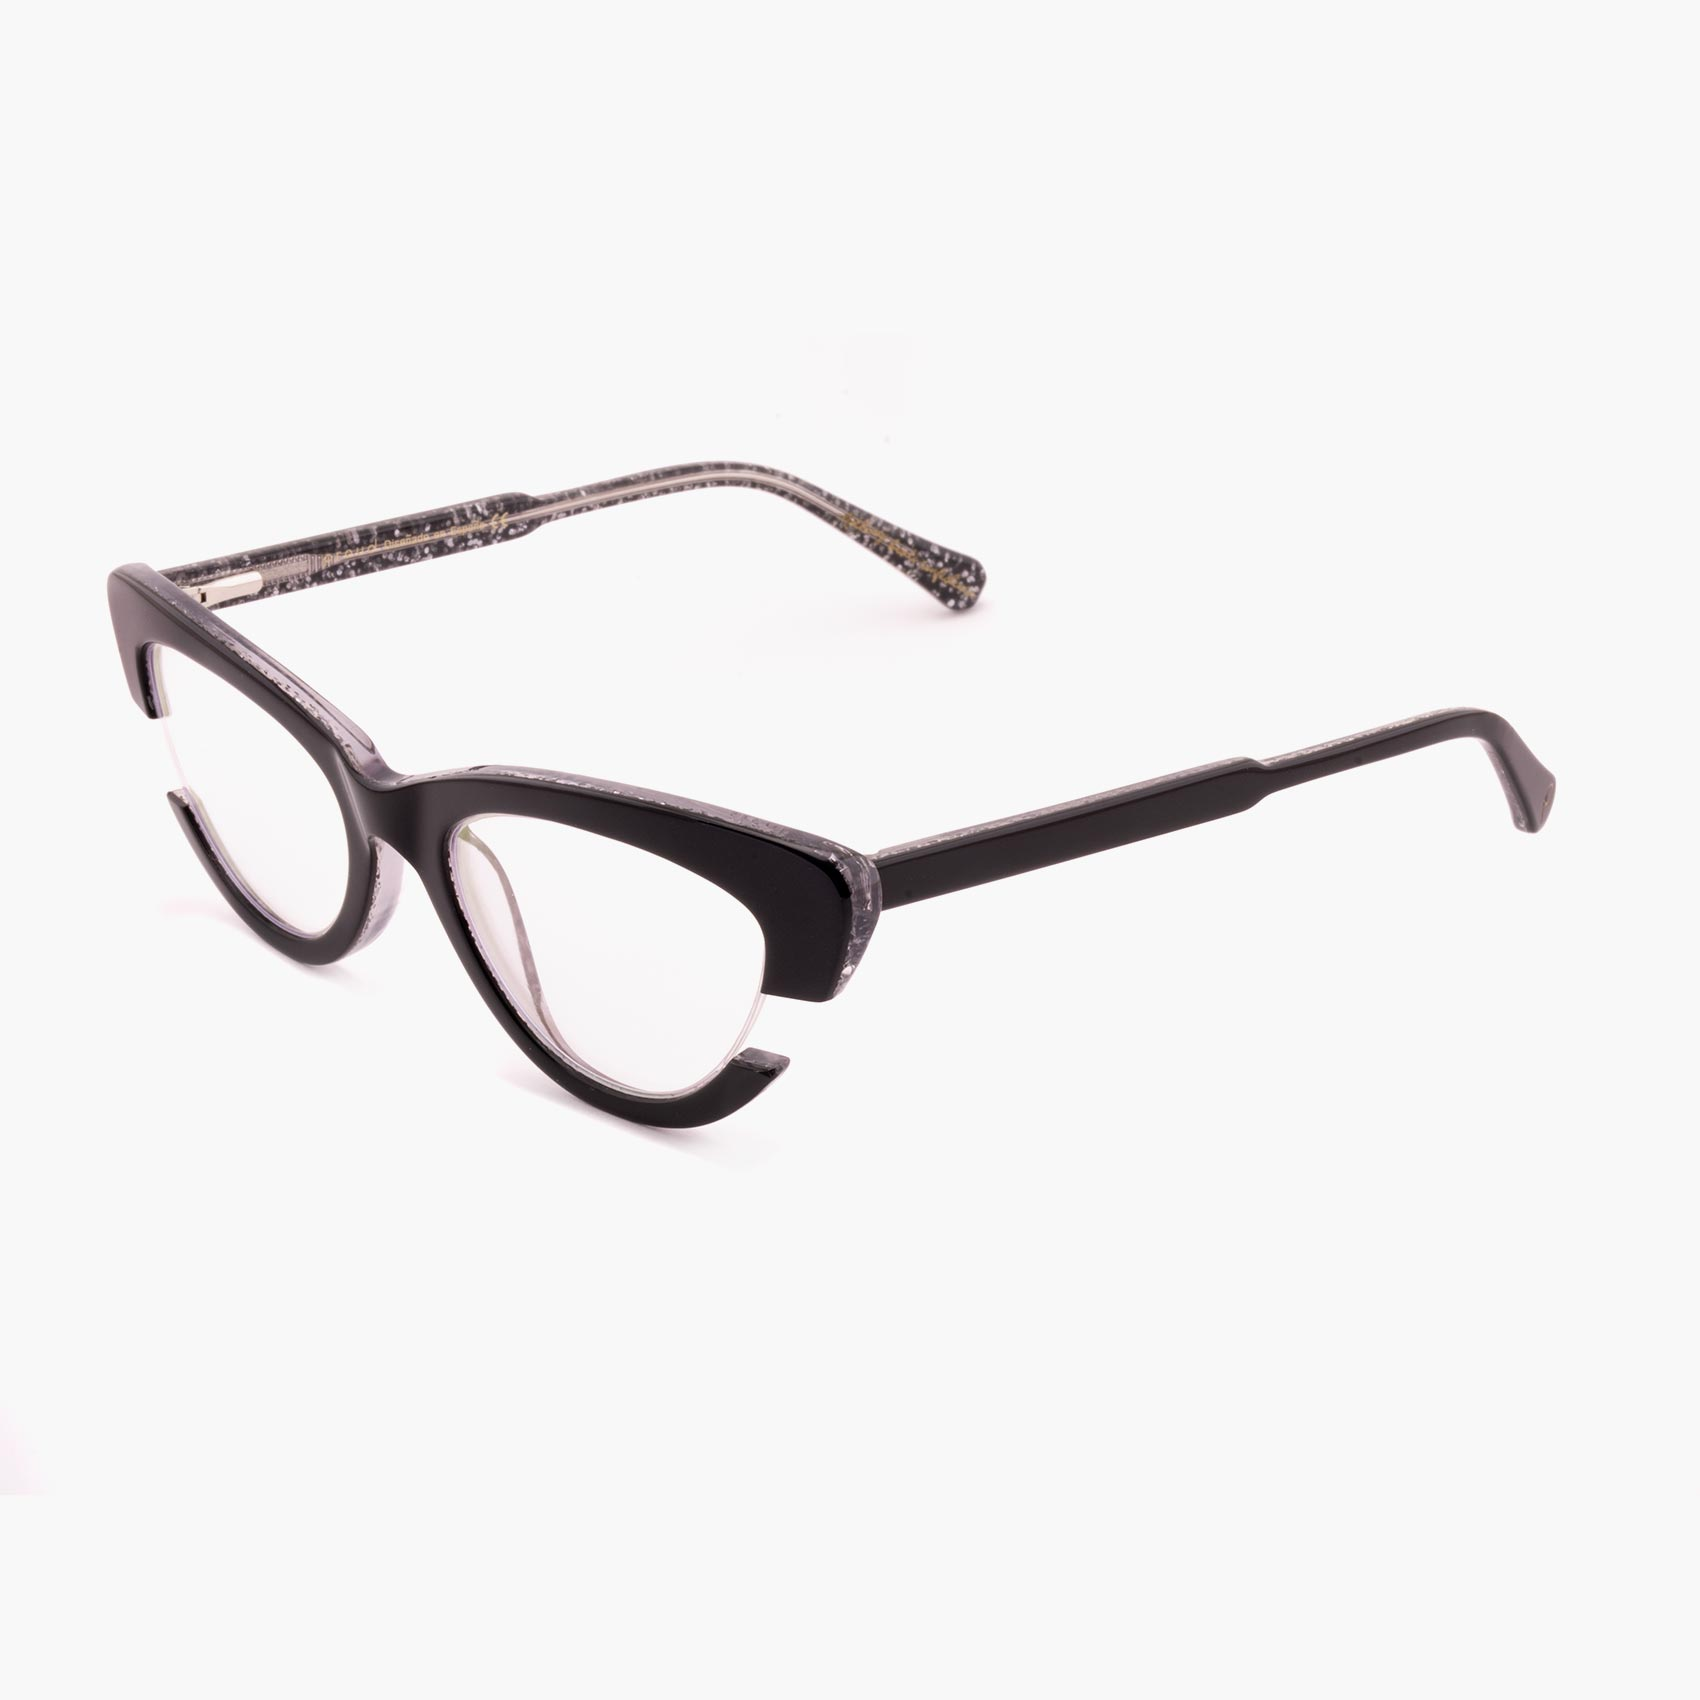 Proud eyewear Jennifer C3 P gafas de vista mujer cat eye